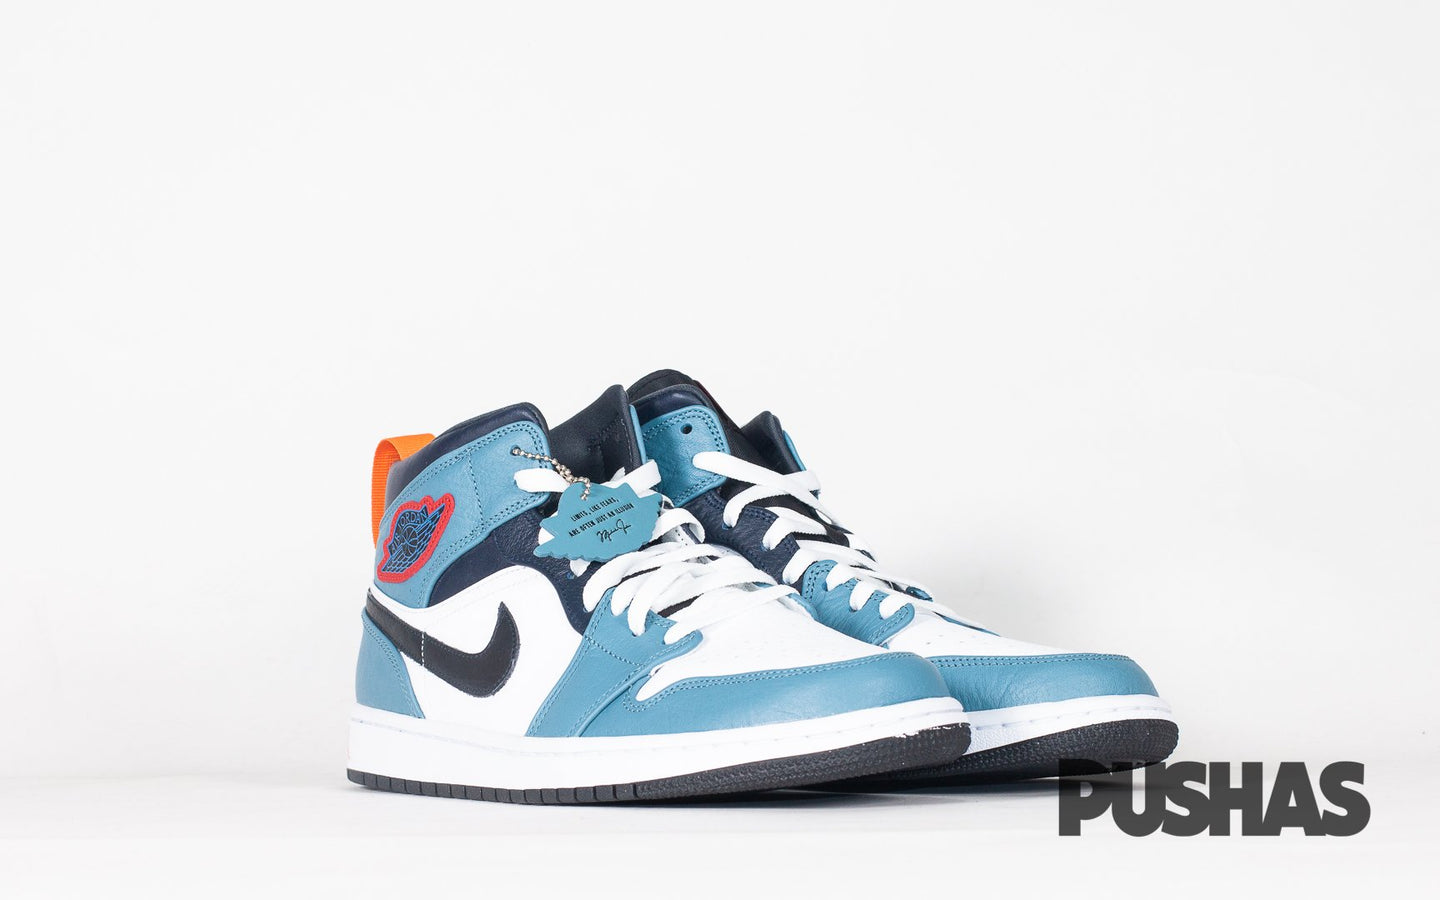 pushas-nike-Air-Jordan-1-Mid-Fearless-Facetasm